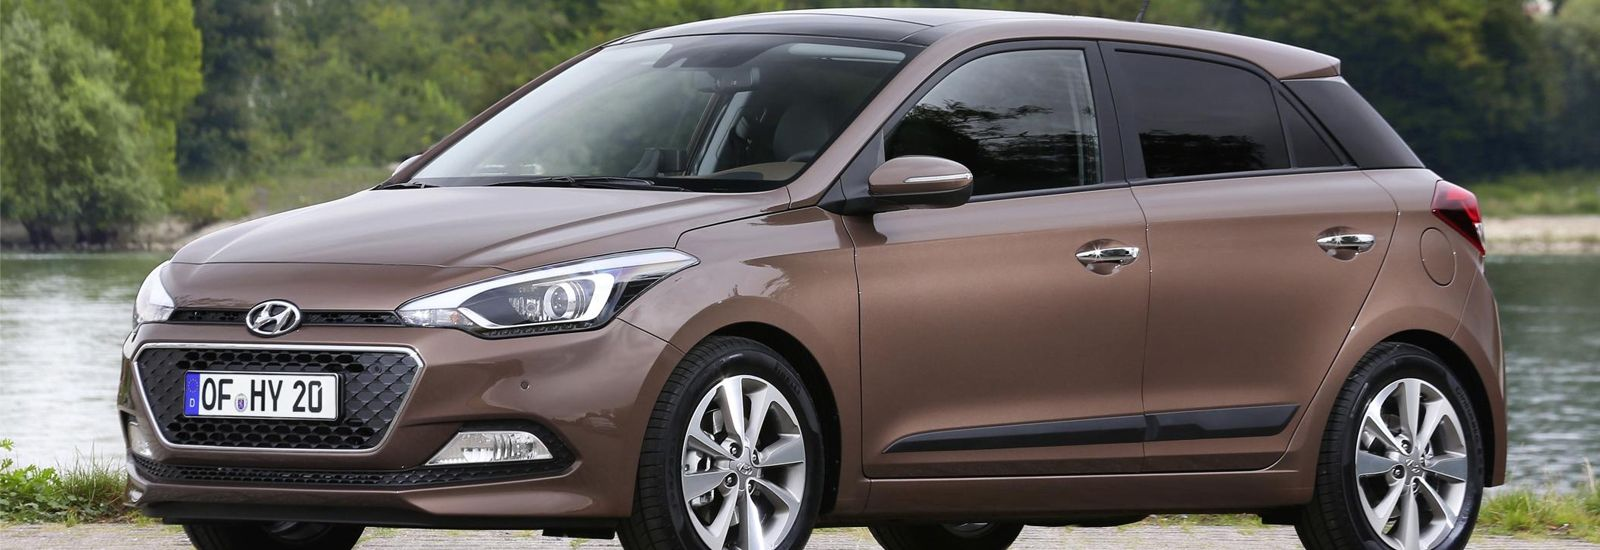 #NewModelElitei20 Check Hyundai Elite i20 price in chennai - Best Price in  Market with largest